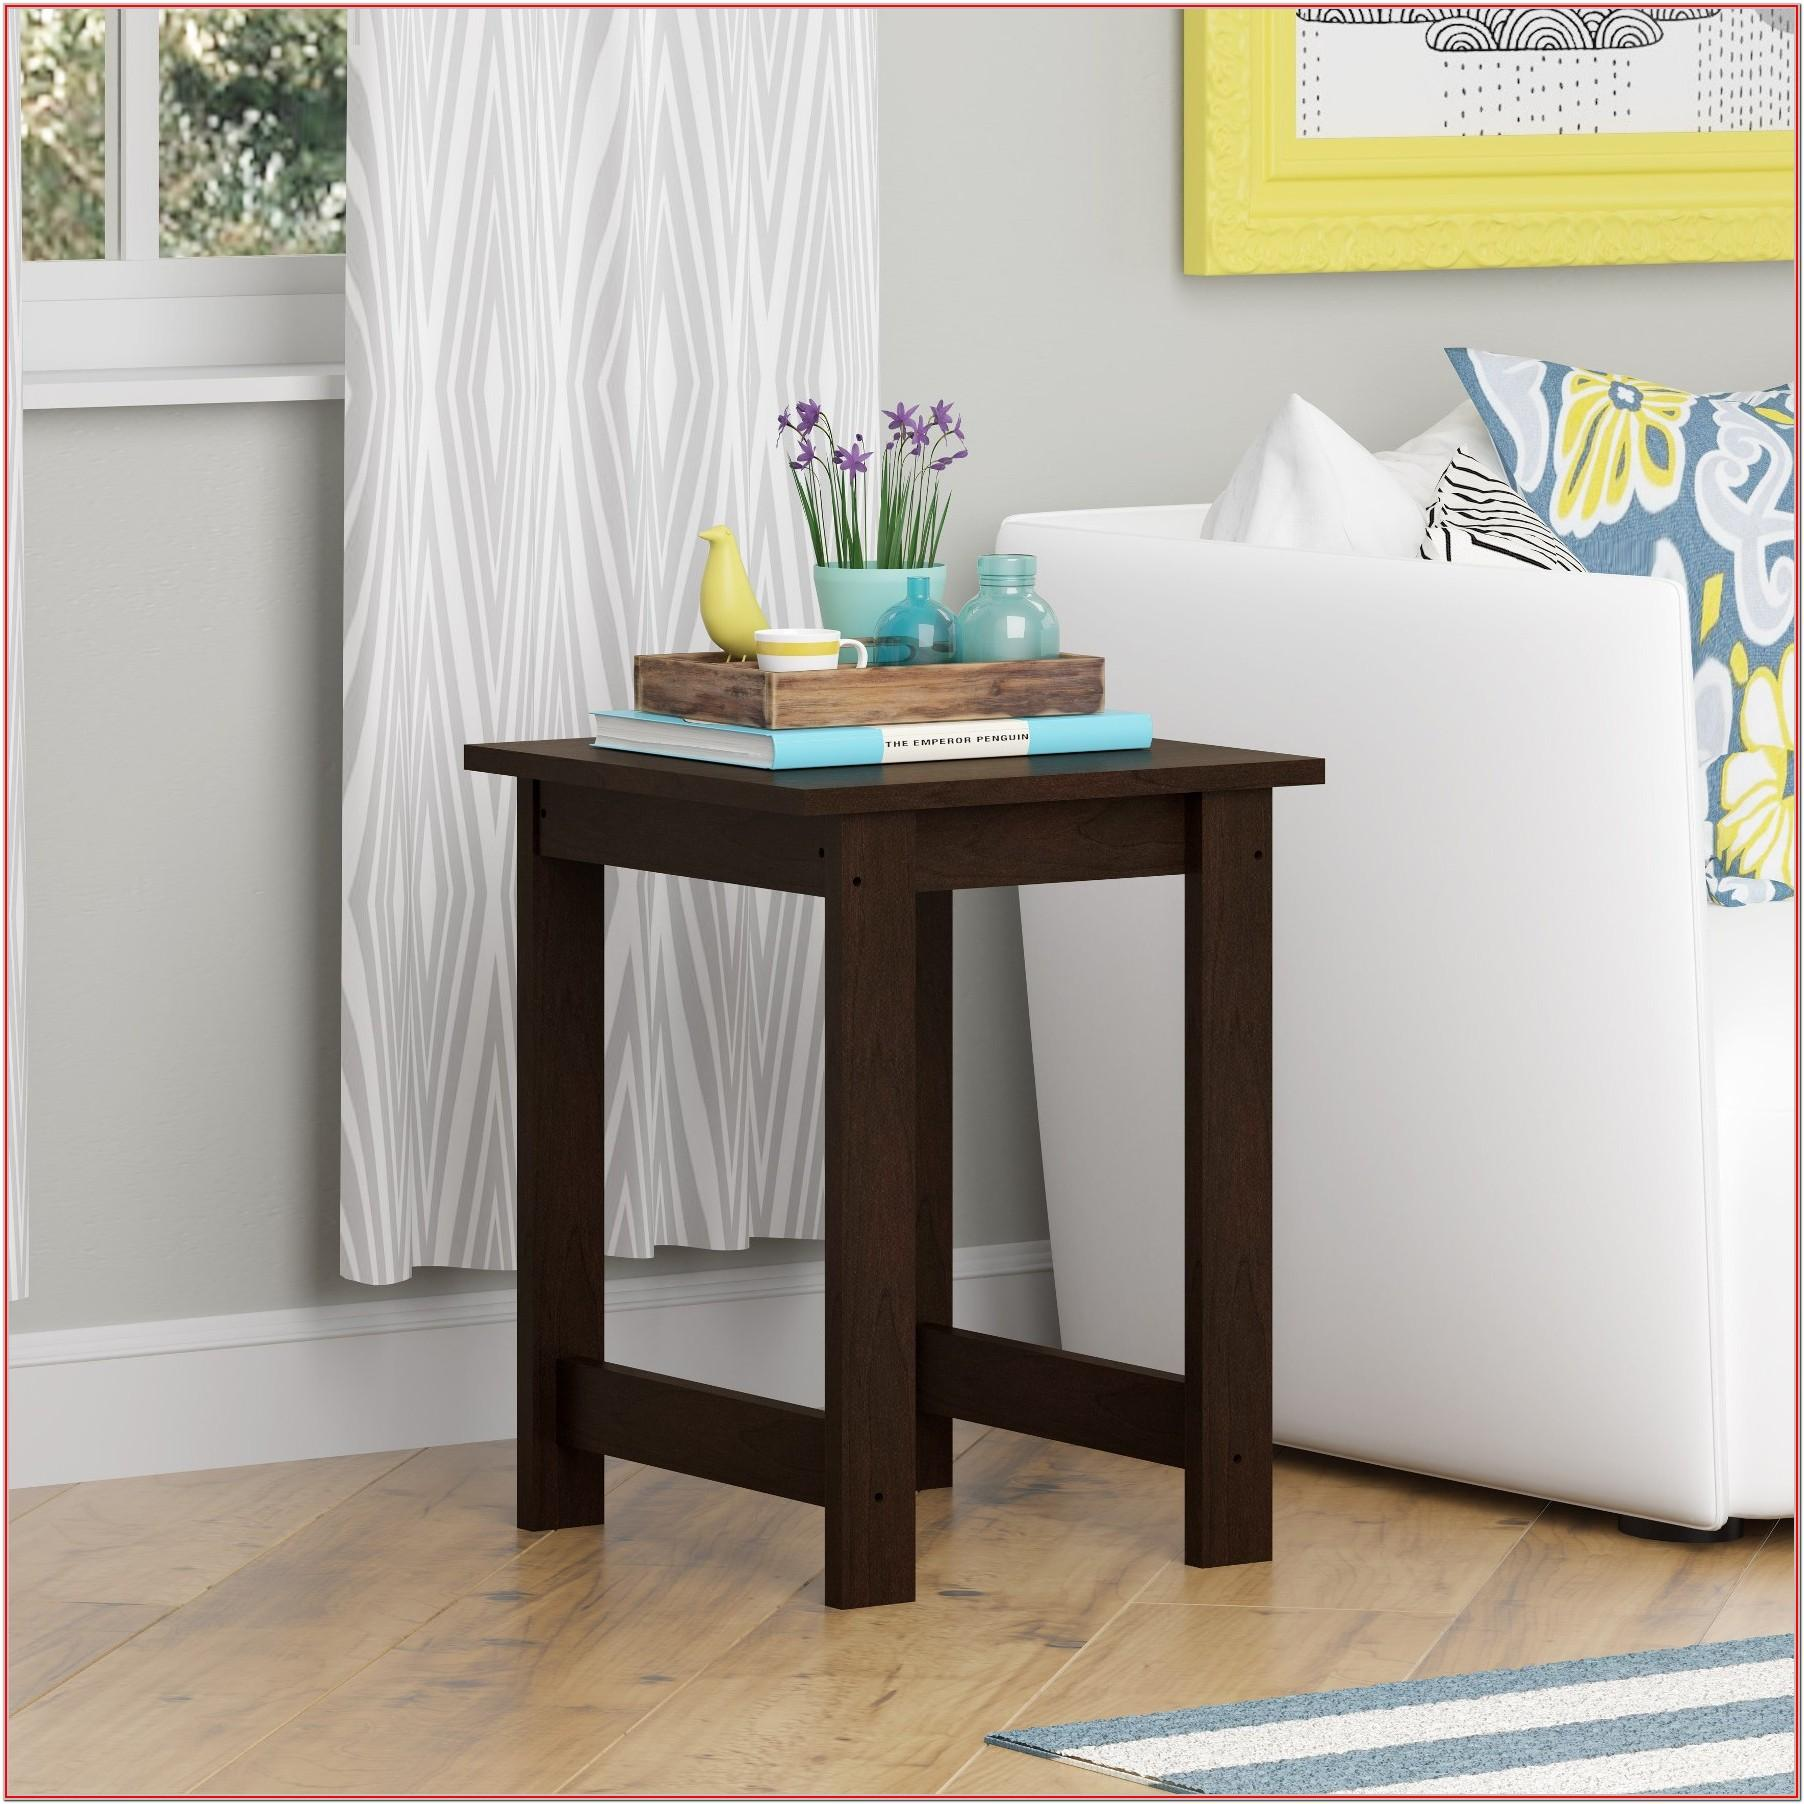 Ideas Fir Living Room Accent Tables